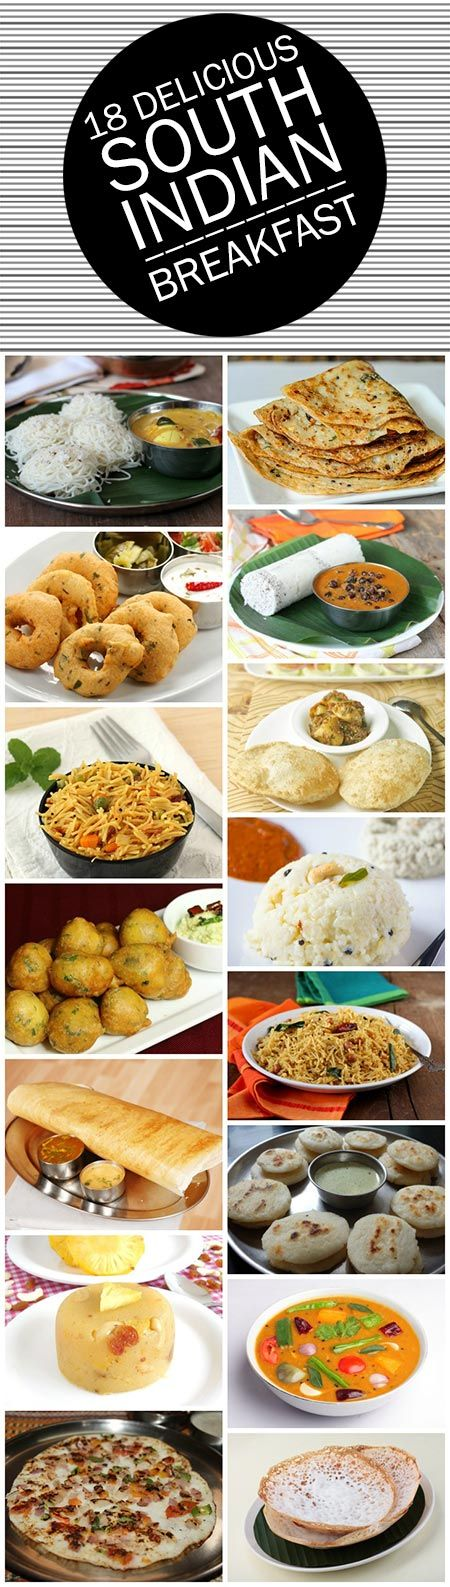 18 delicious south indian breakfast recipes you must try health do you know that the breakfast dishes from south india are a combination of taste and health here are 18 delicious south indian breakfast recipes for you forumfinder Images